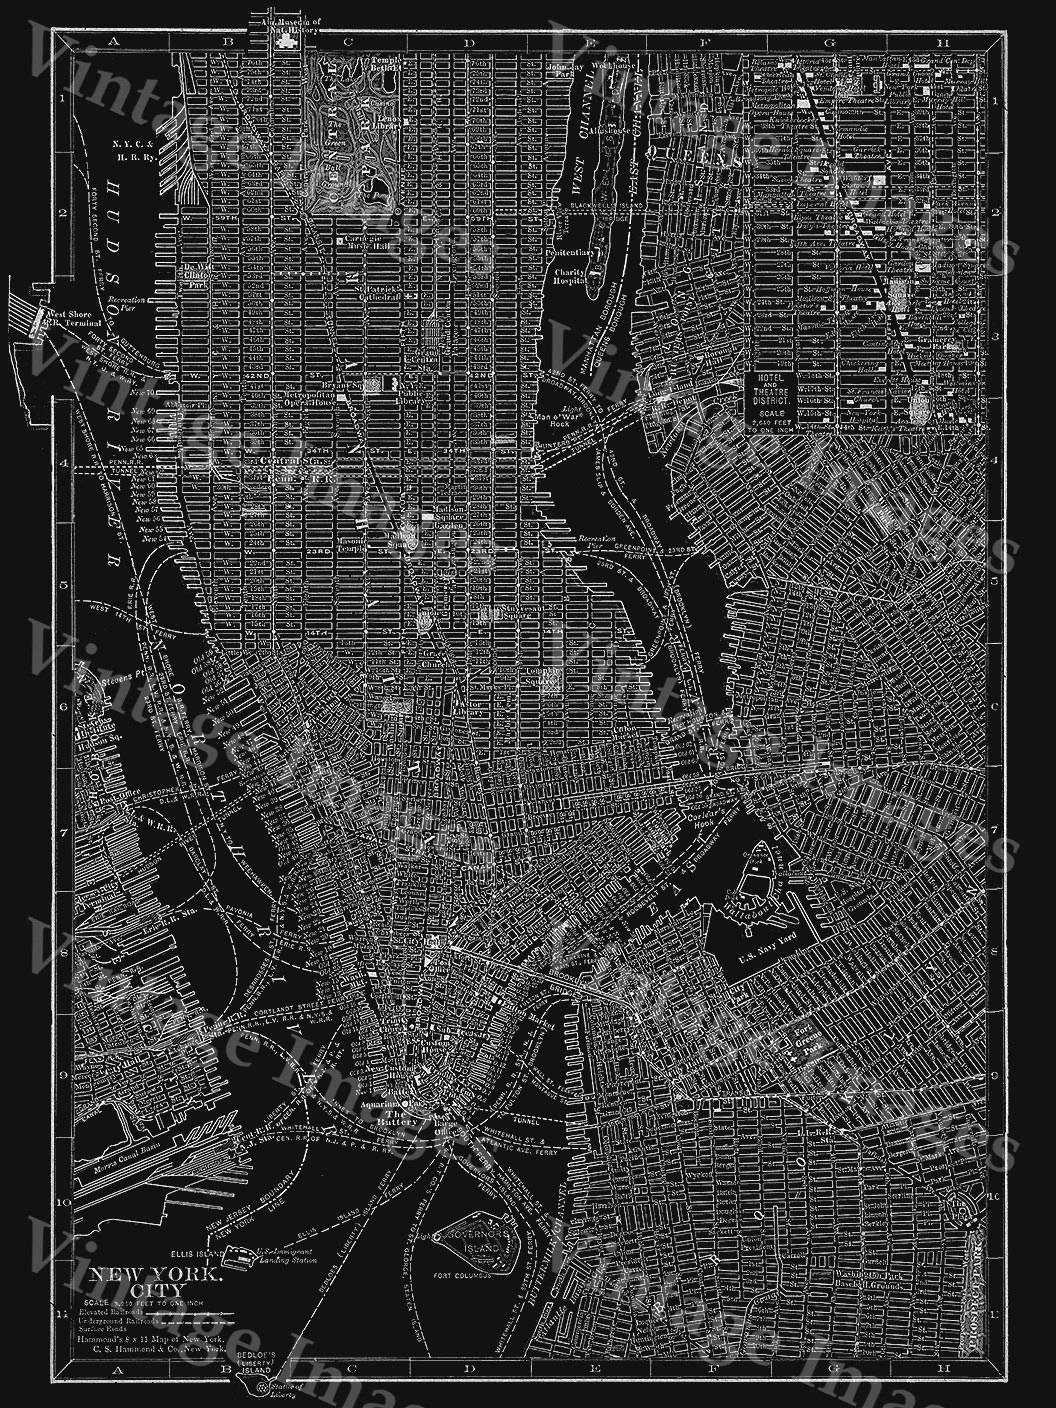 New York Map Art Huge 1910 Black & White New York City Map Antique Inside 2017 New York City Map Wall Art (View 12 of 20)